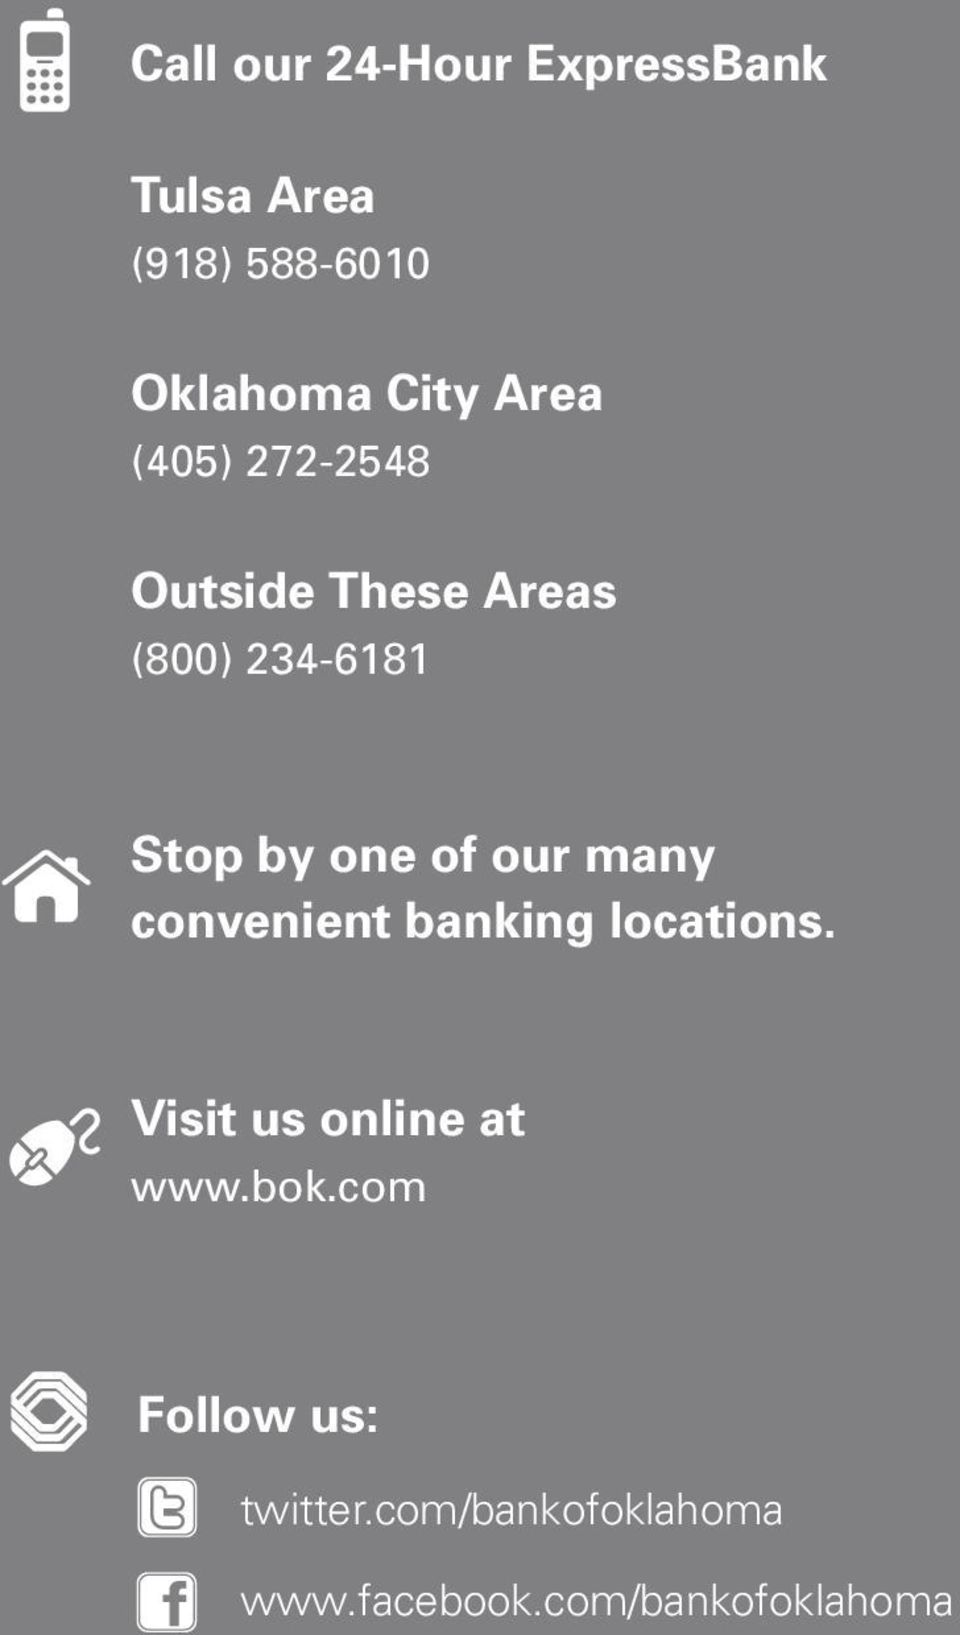 our many convenient banking locations. Visit us online at www.bok.